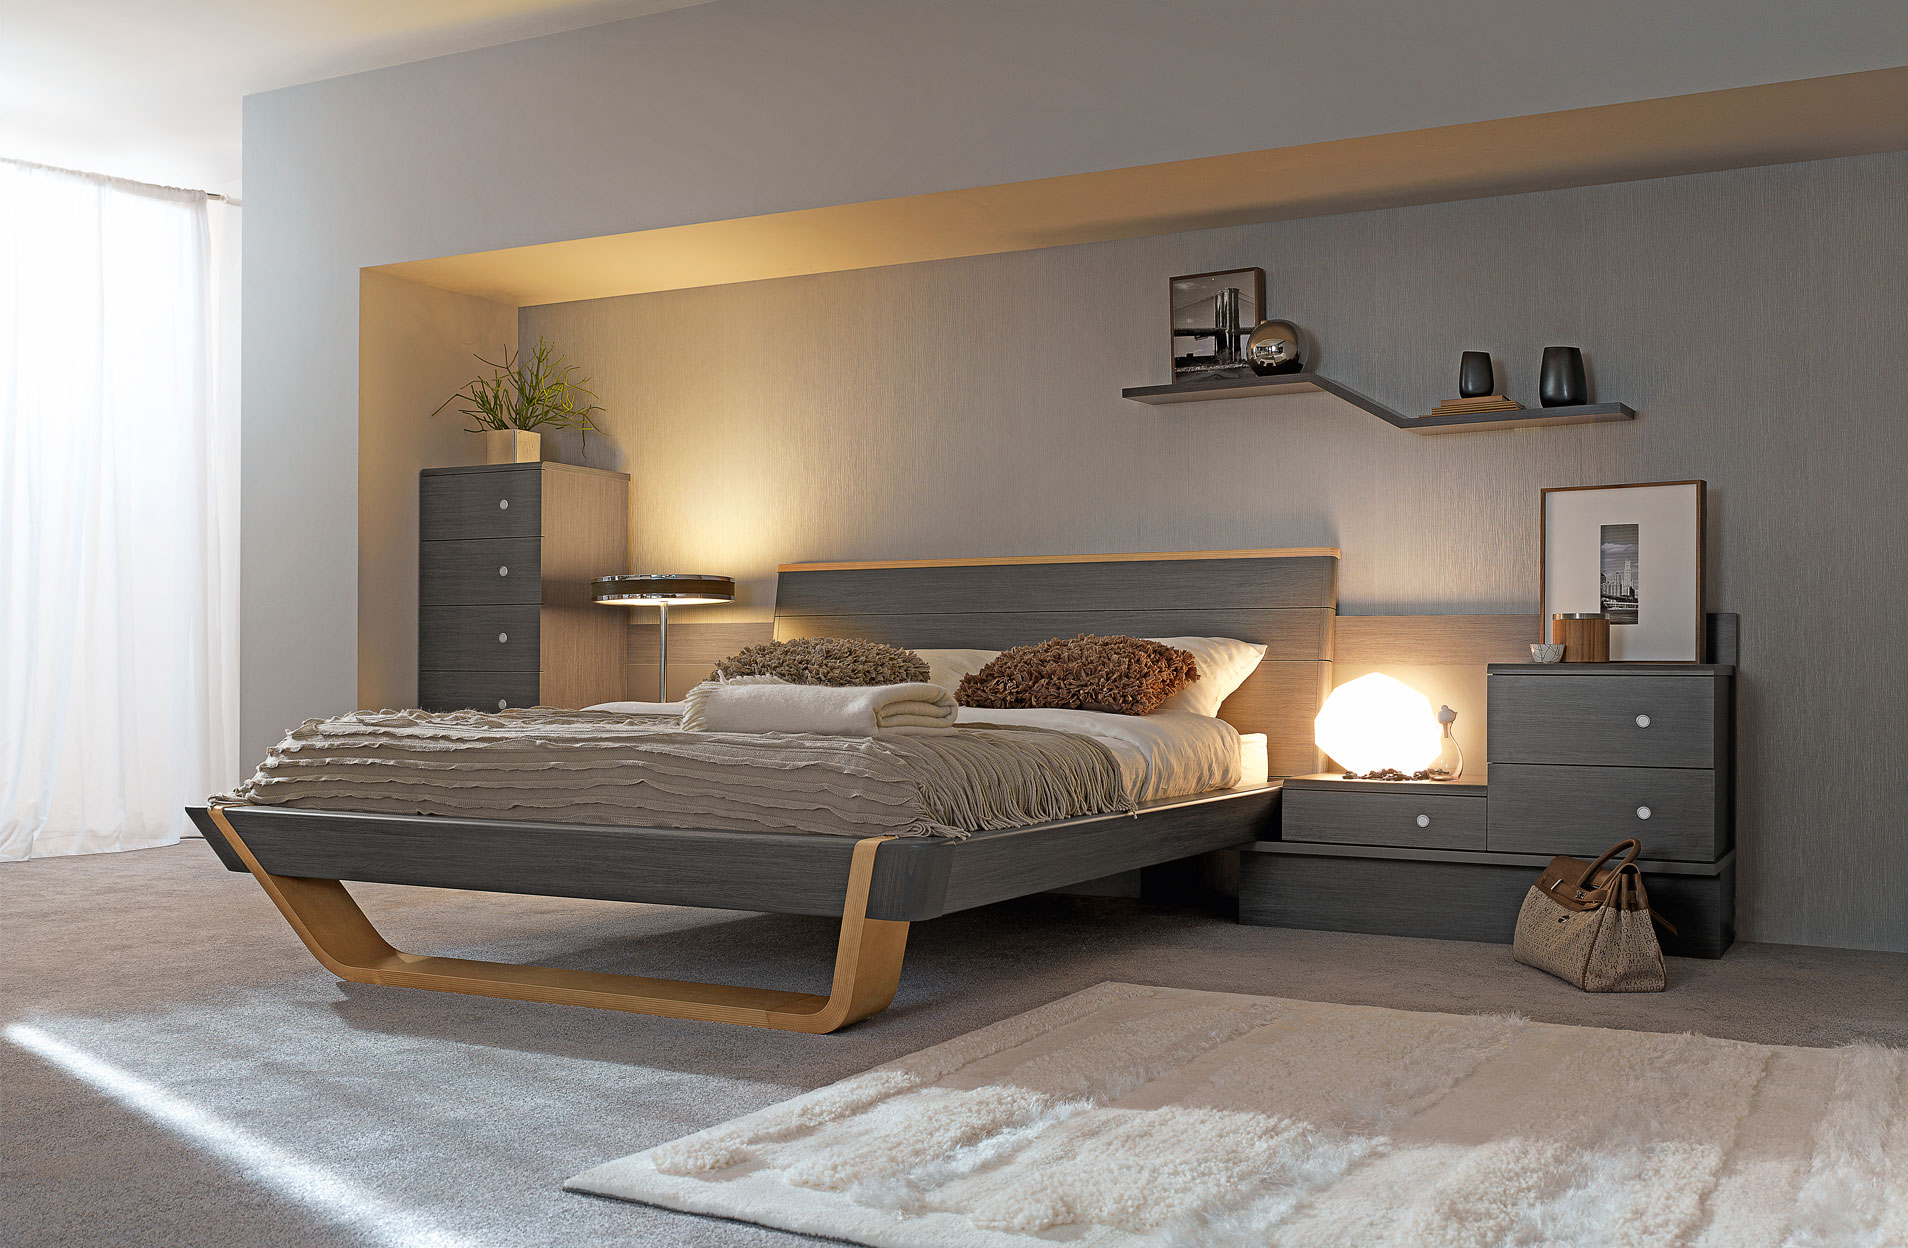 inspiration d co pour une chambre avec des meubles gautier. Black Bedroom Furniture Sets. Home Design Ideas